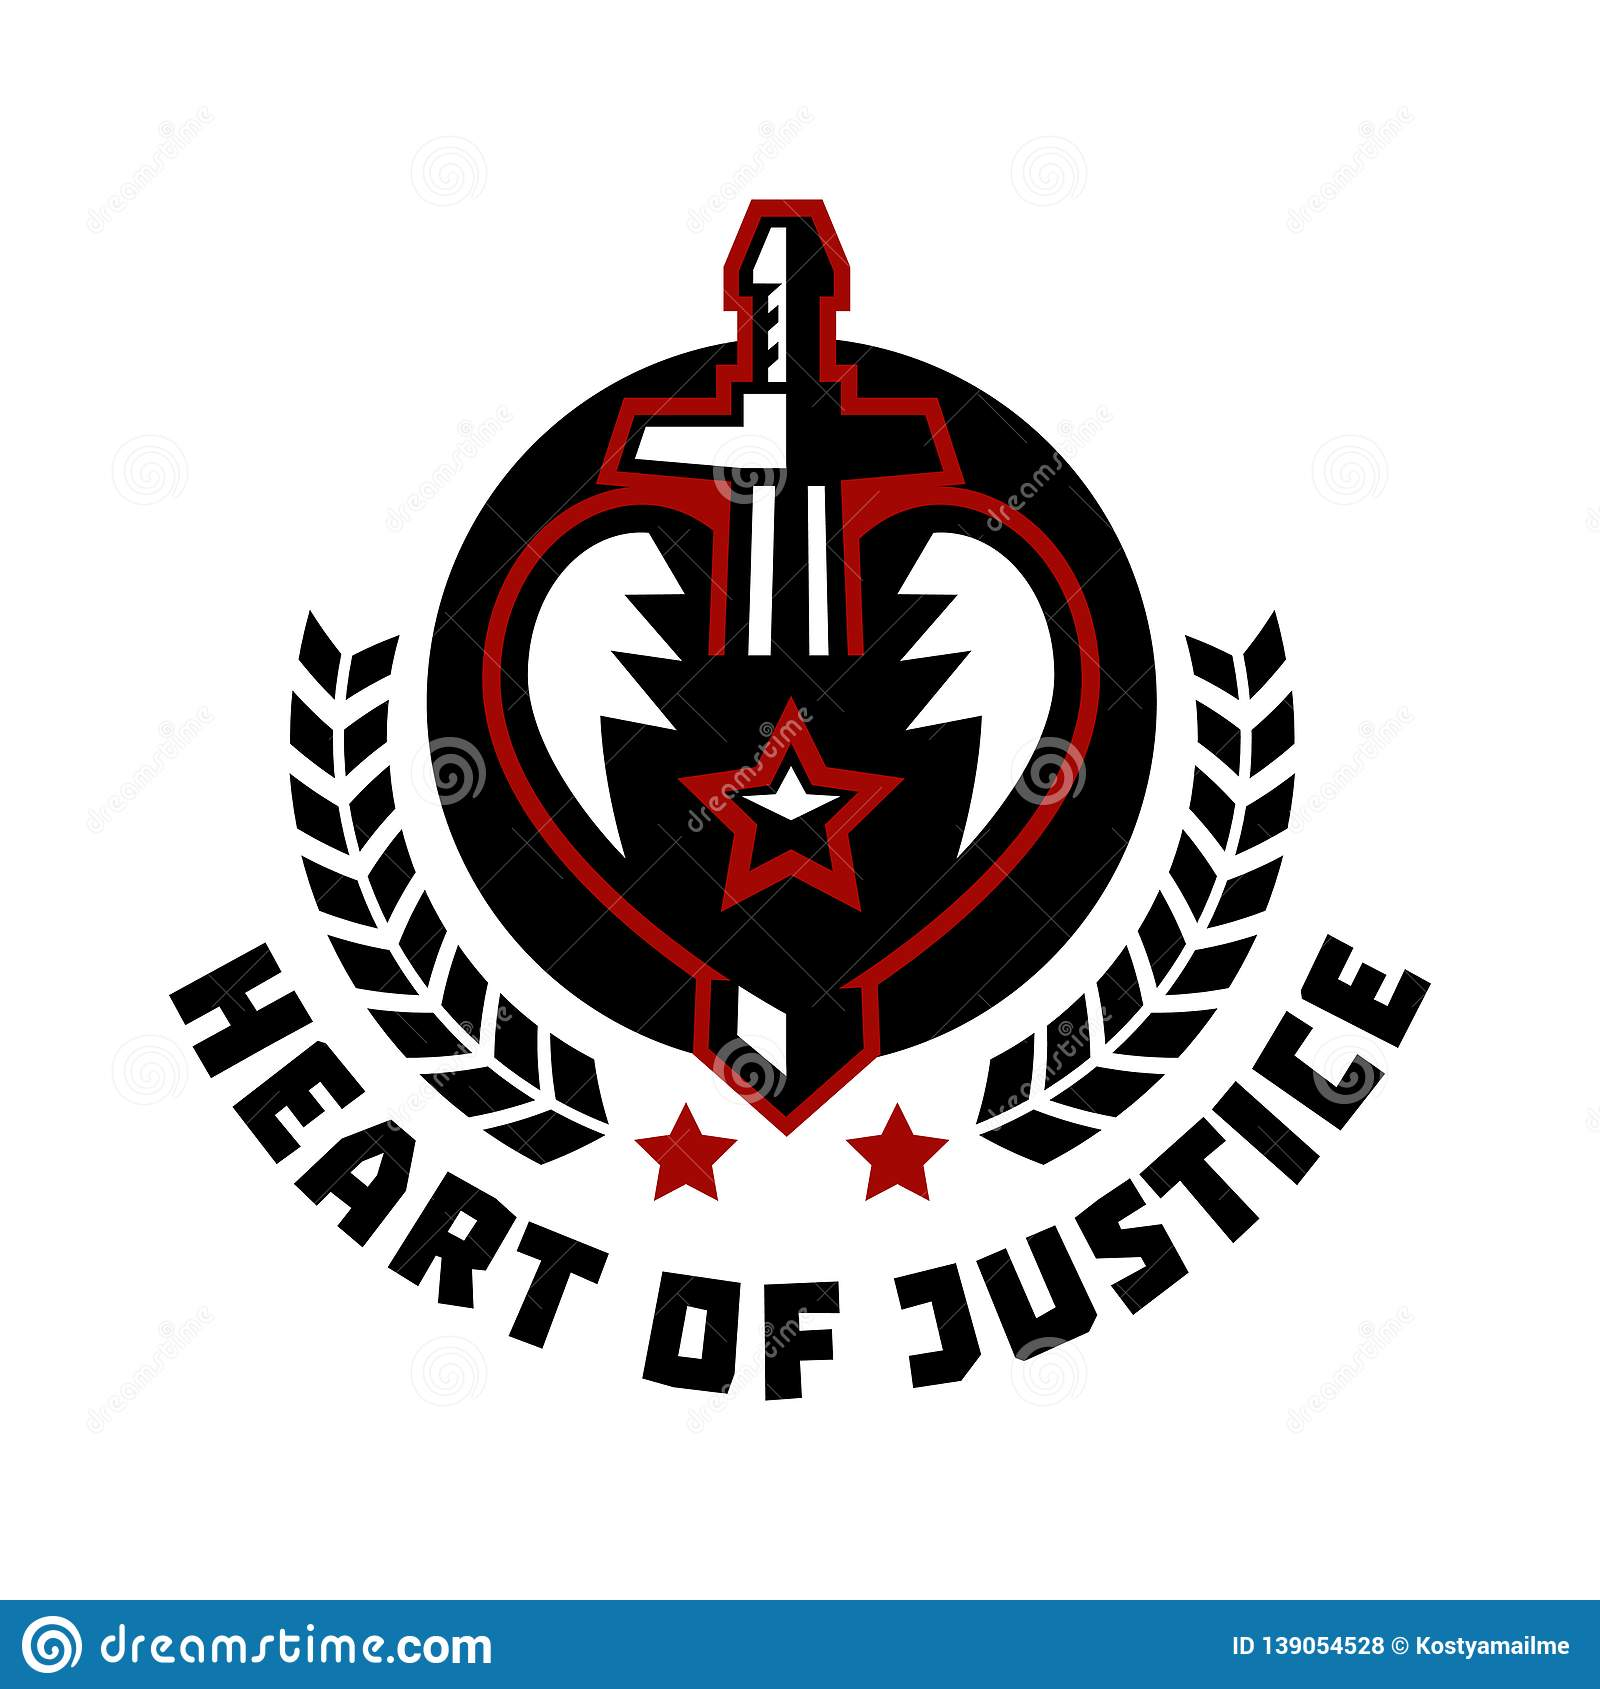 Logo heart of justice. The sword piercing the heart. Blood, cut. The struggle for justice. Hero Theme. Wreath. Vector